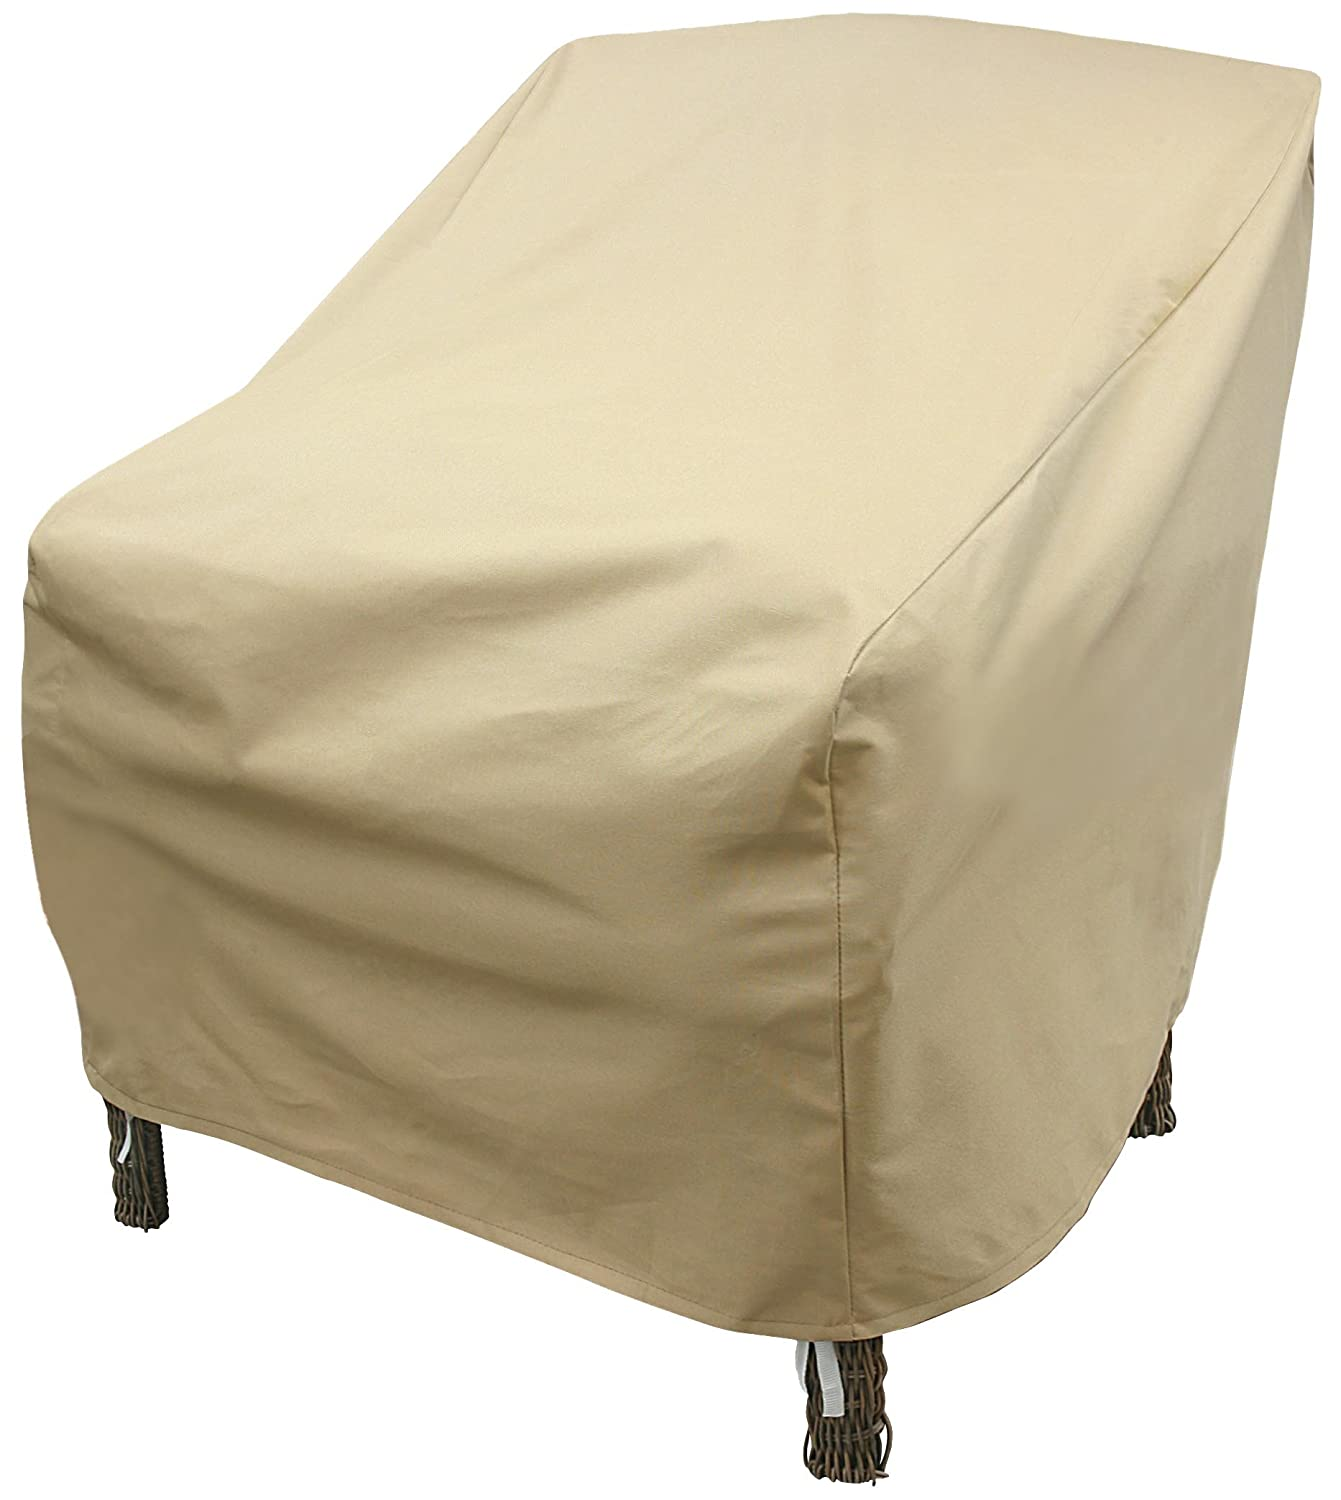 Amazon.com : Modern Leisure Patio Chair Cover : Outdoor Chair Covers :  Garden U0026 Outdoor Part 17